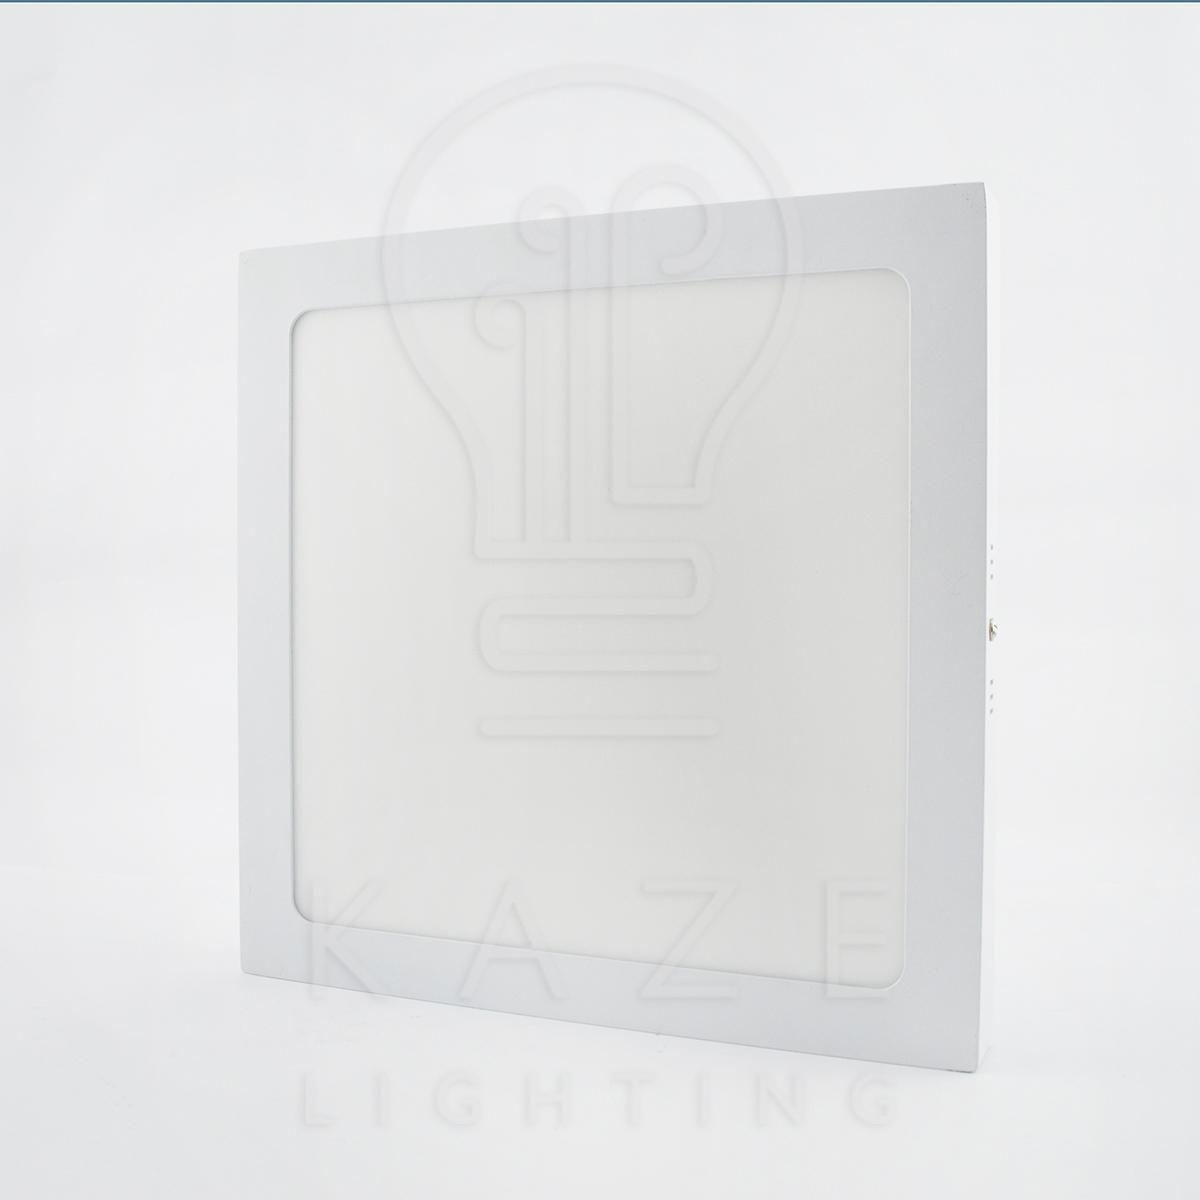 Top 10 5Pcs Surface Mounted Led Panel Ceiling Light Square 18W